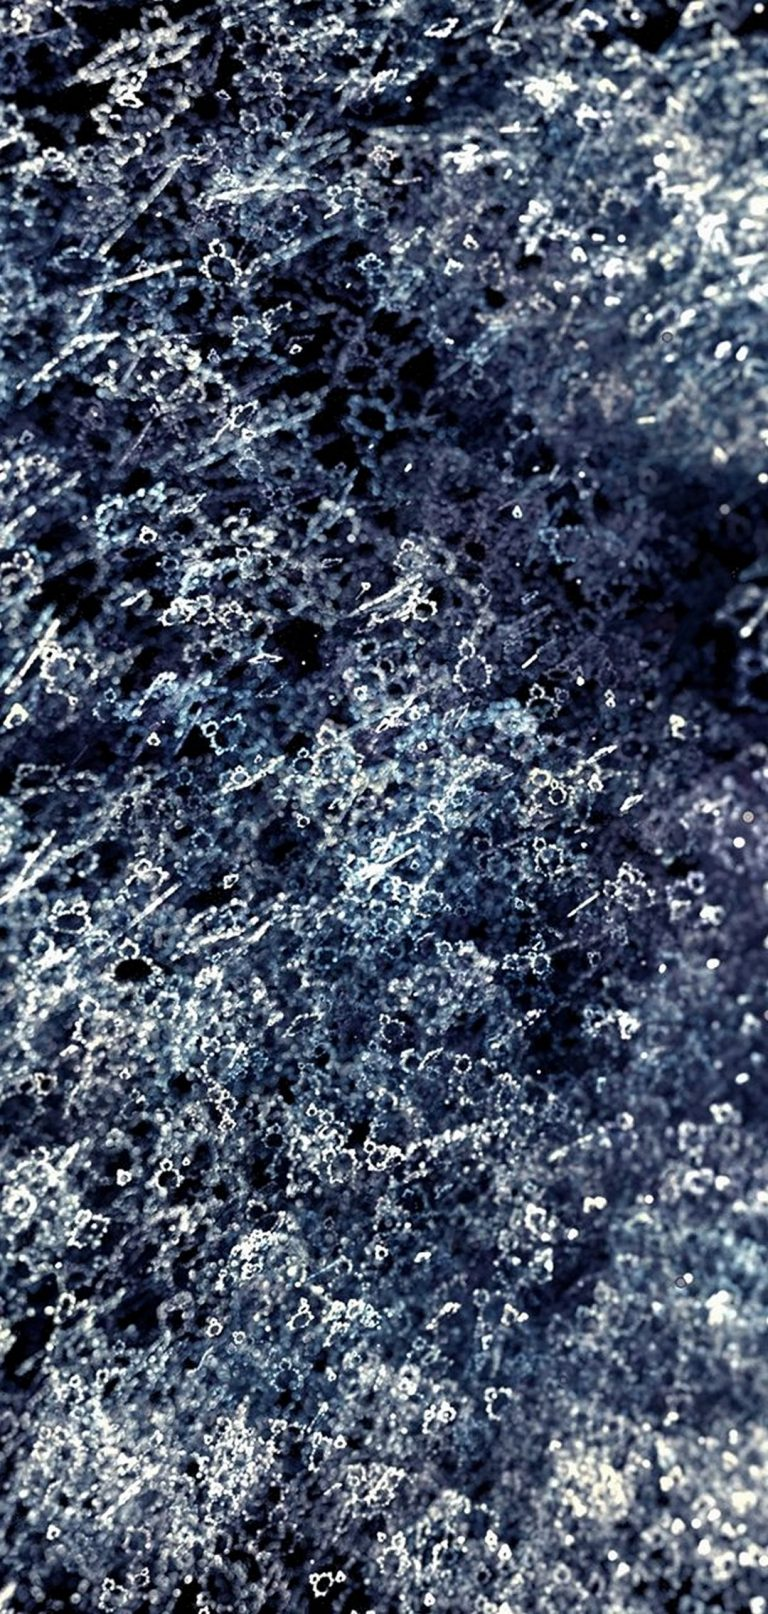 Fractal Foam Shine Abstract 1080x2270 768x1614